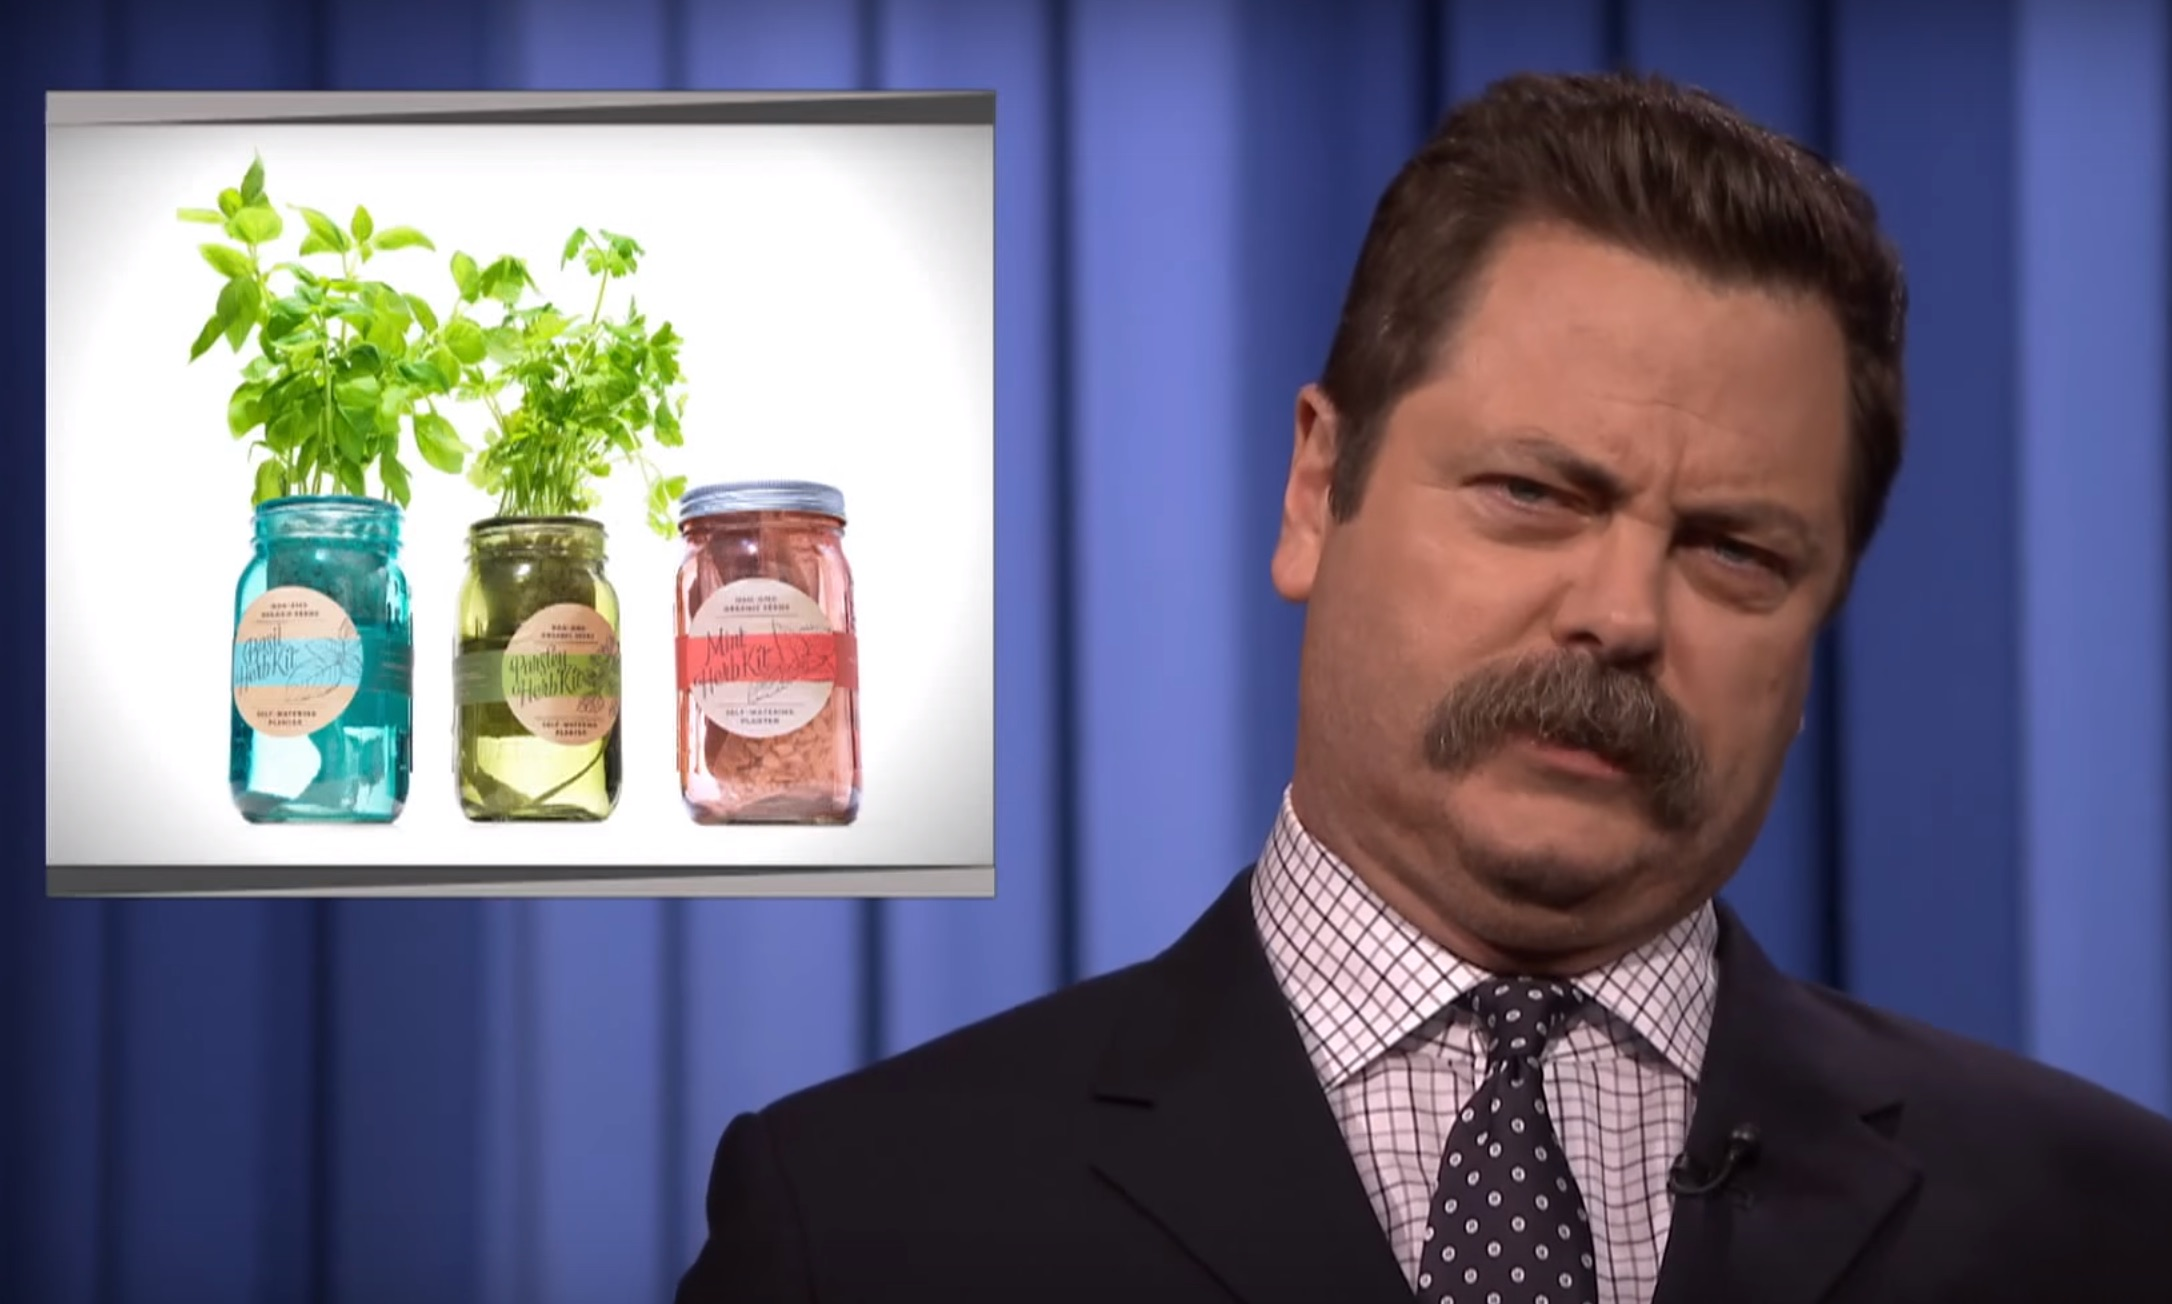 Nick Offerman reading Oprah's list of Favorite Things is priceless